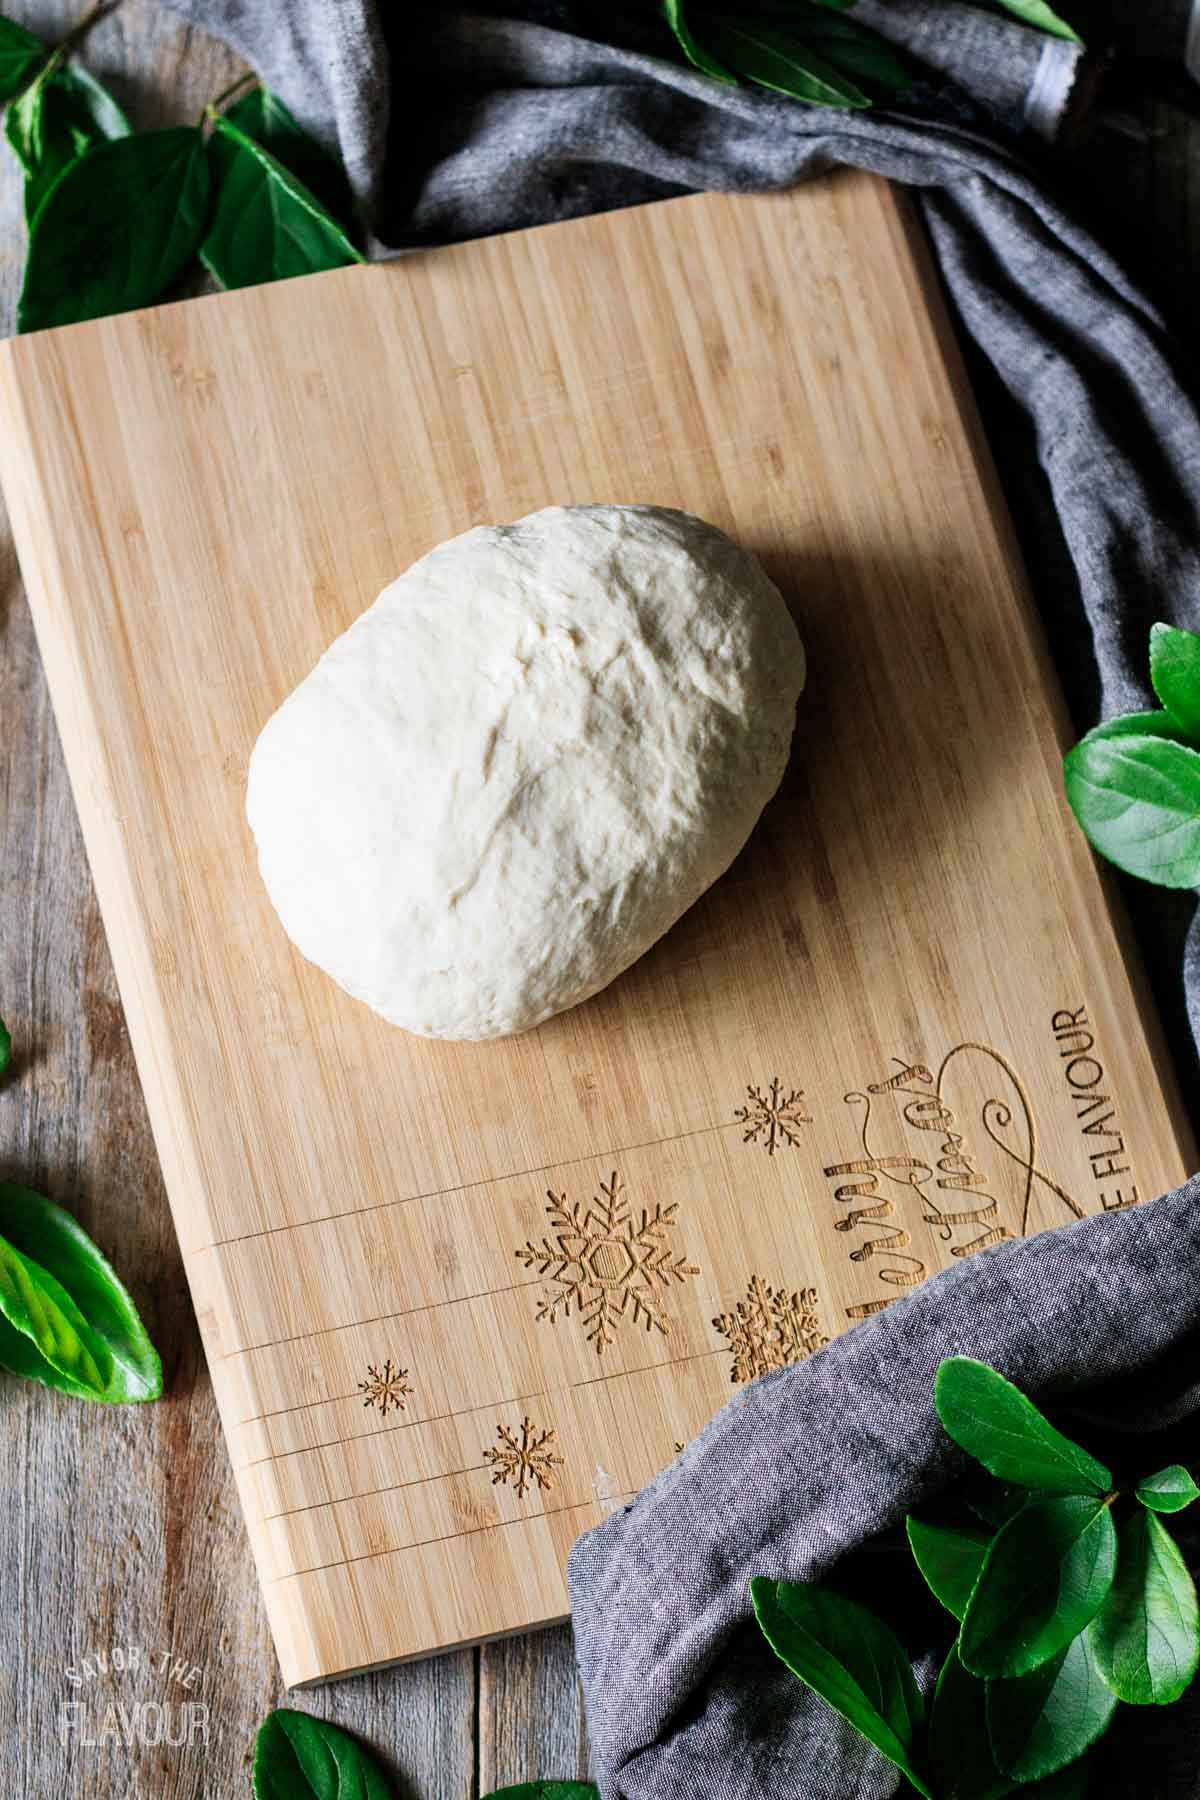 kneaded dough on a cutting board